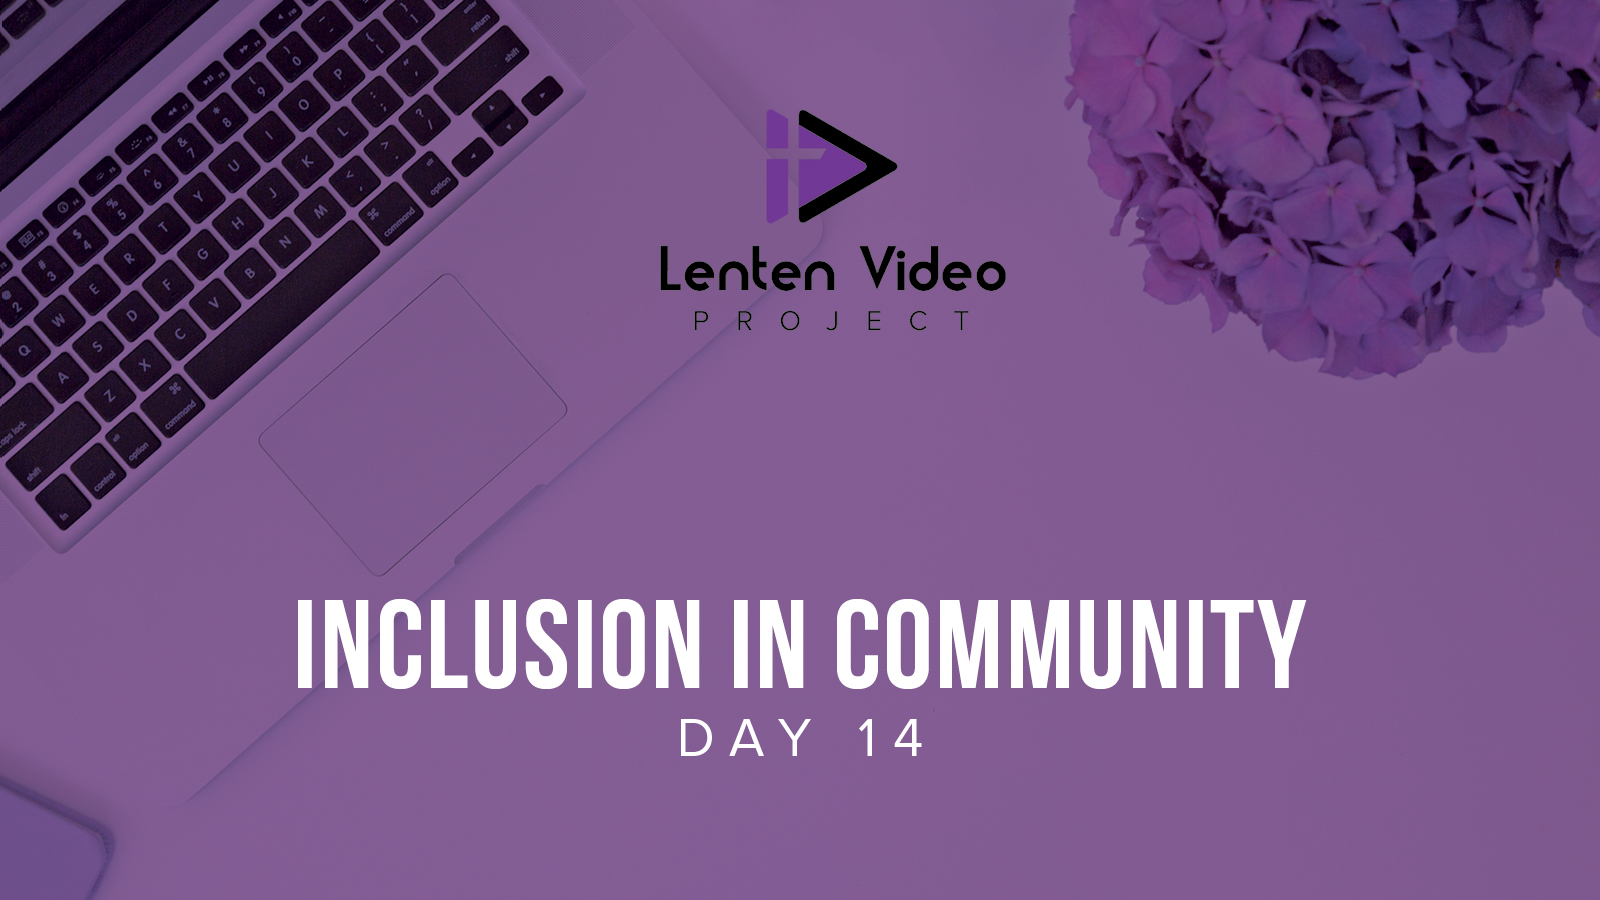 Inclusion in Community